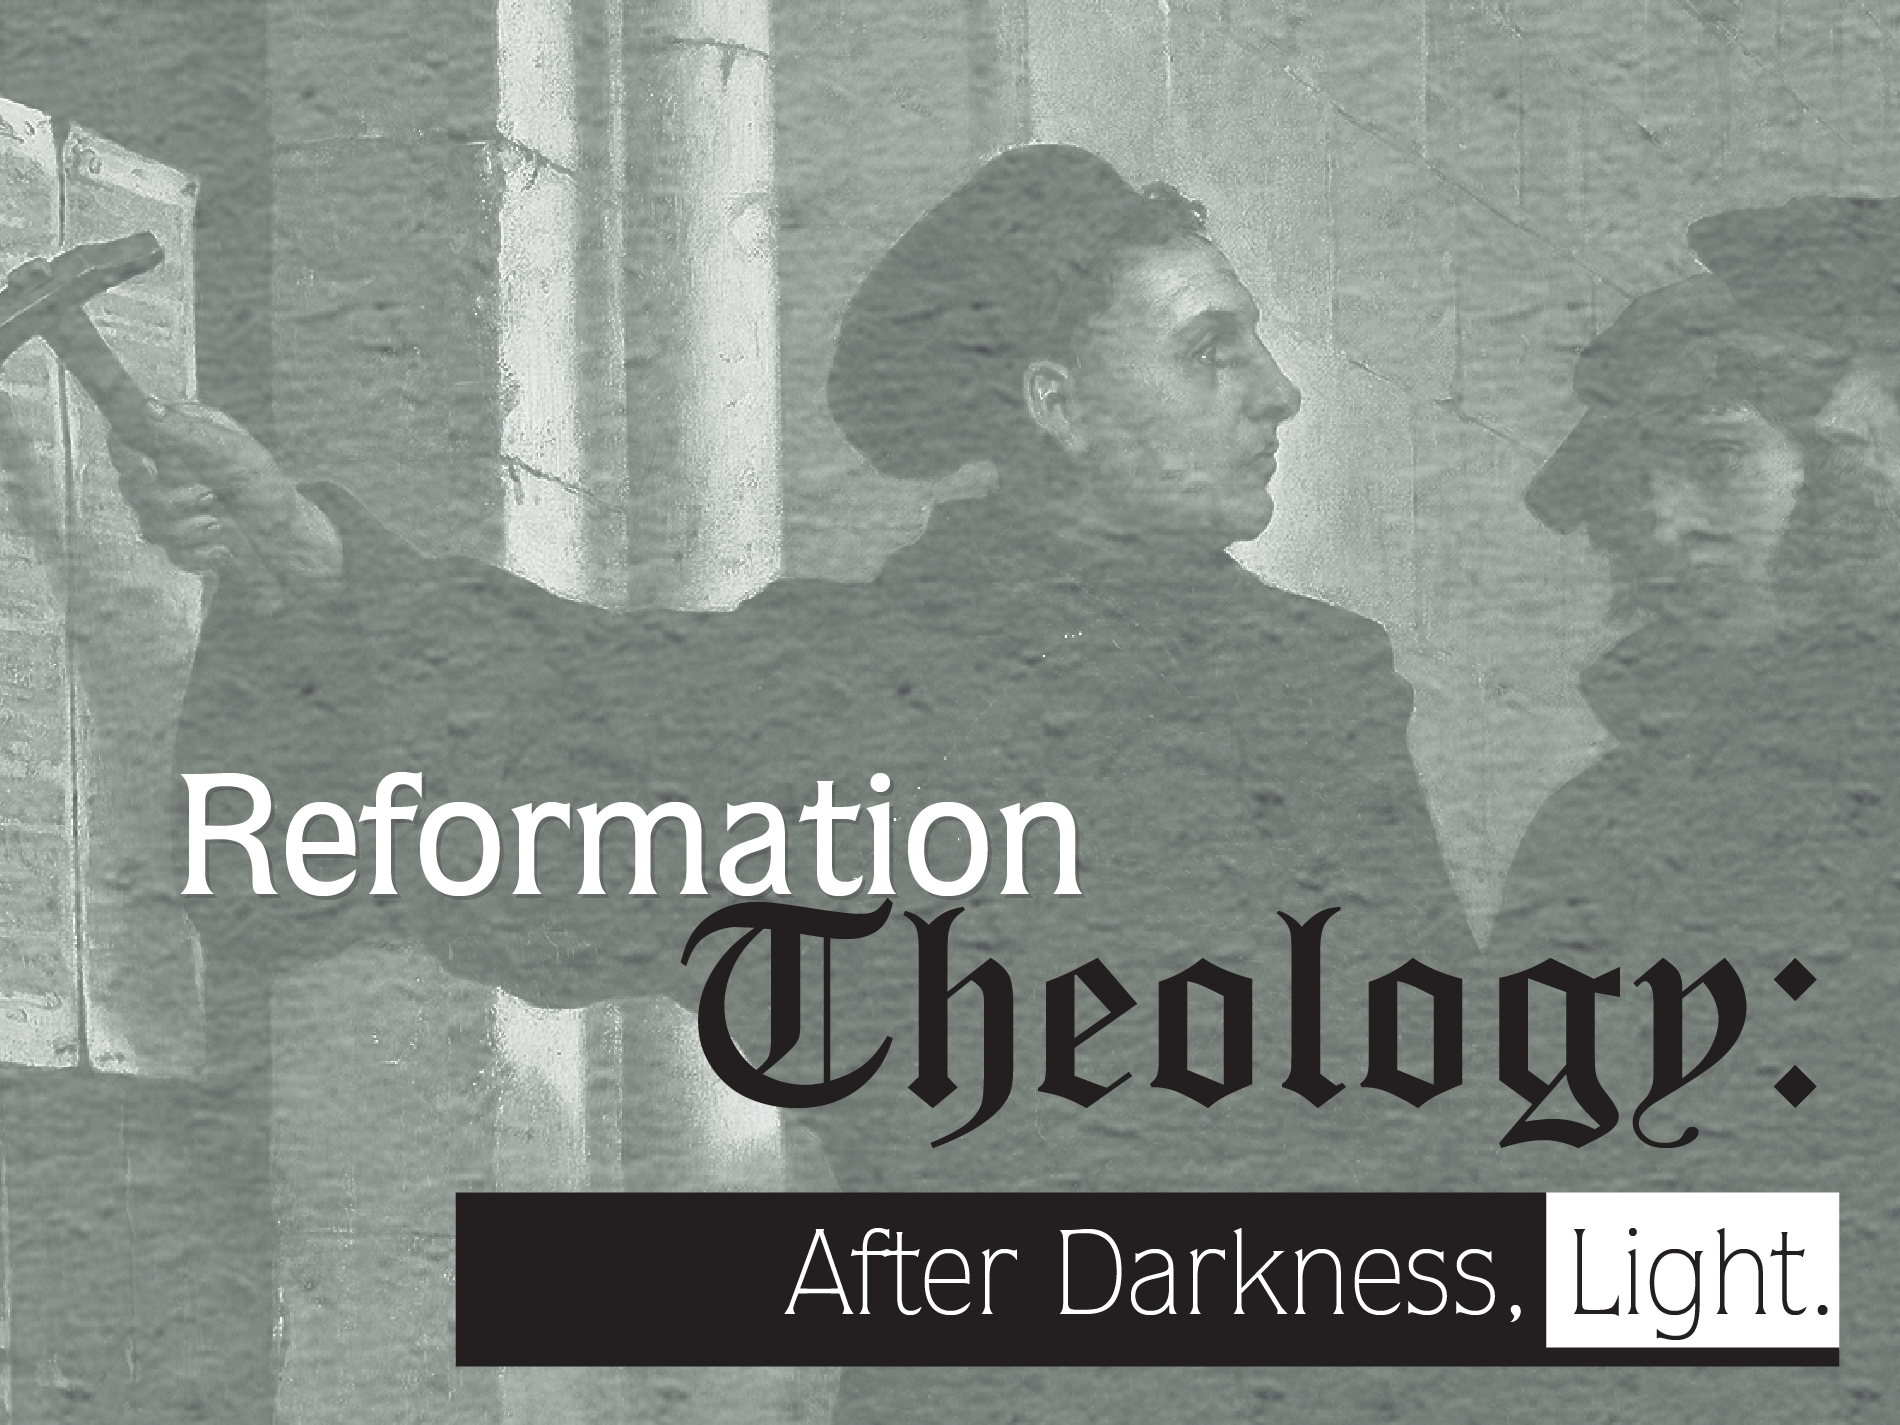 reformation-1900x1425px.png